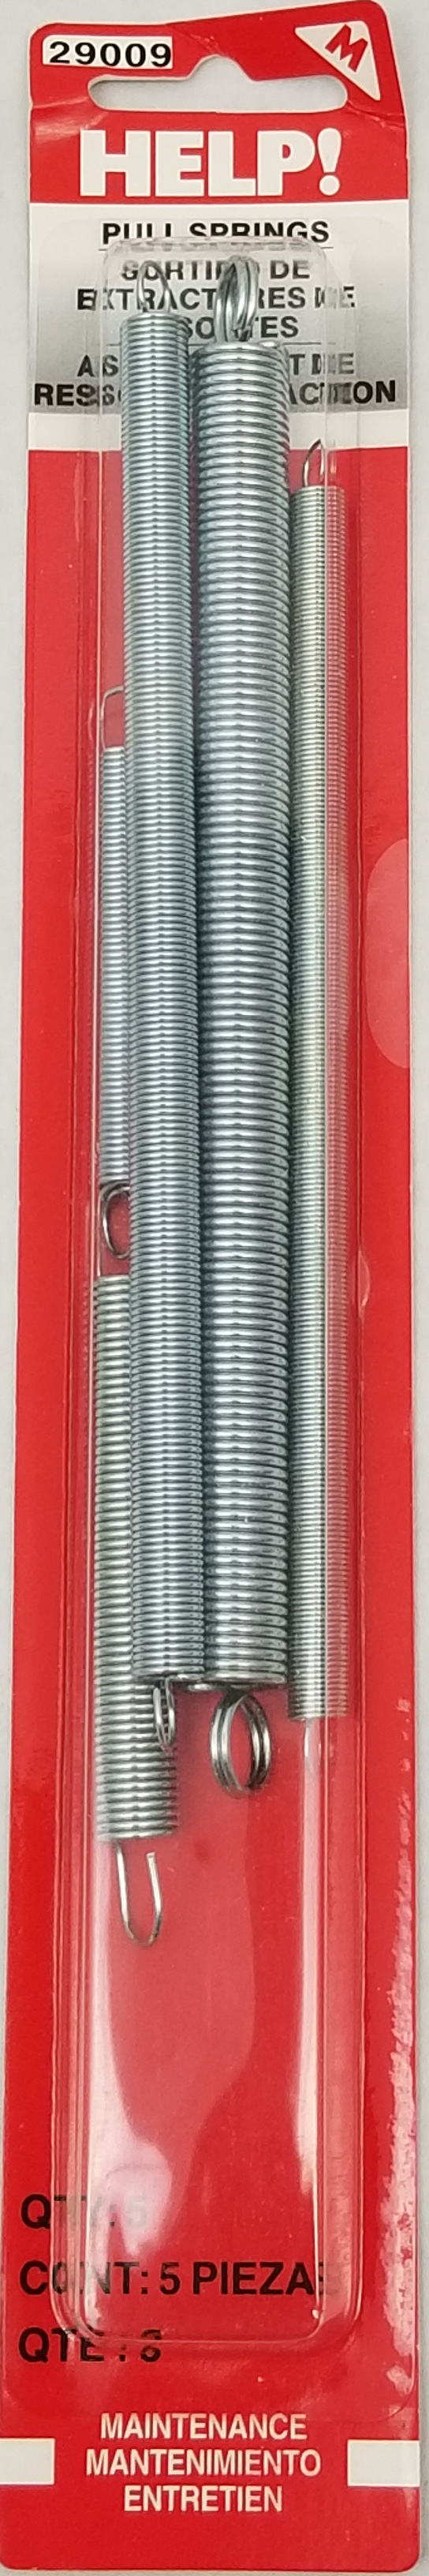 05529009 - Universal Pull Spring Assortment